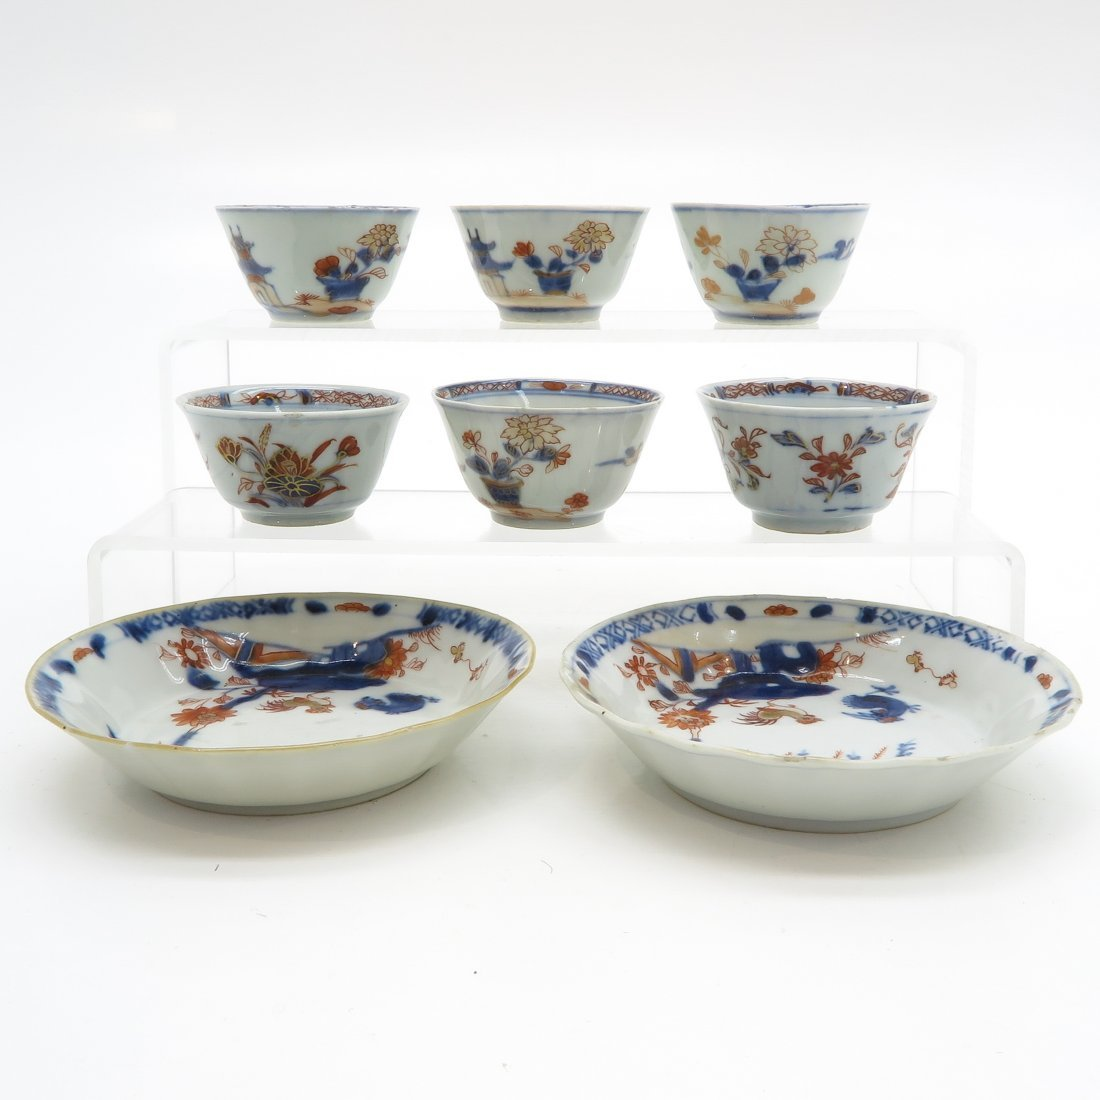 Lot of 18th Century China Porcelain Cups and Saucers - 3